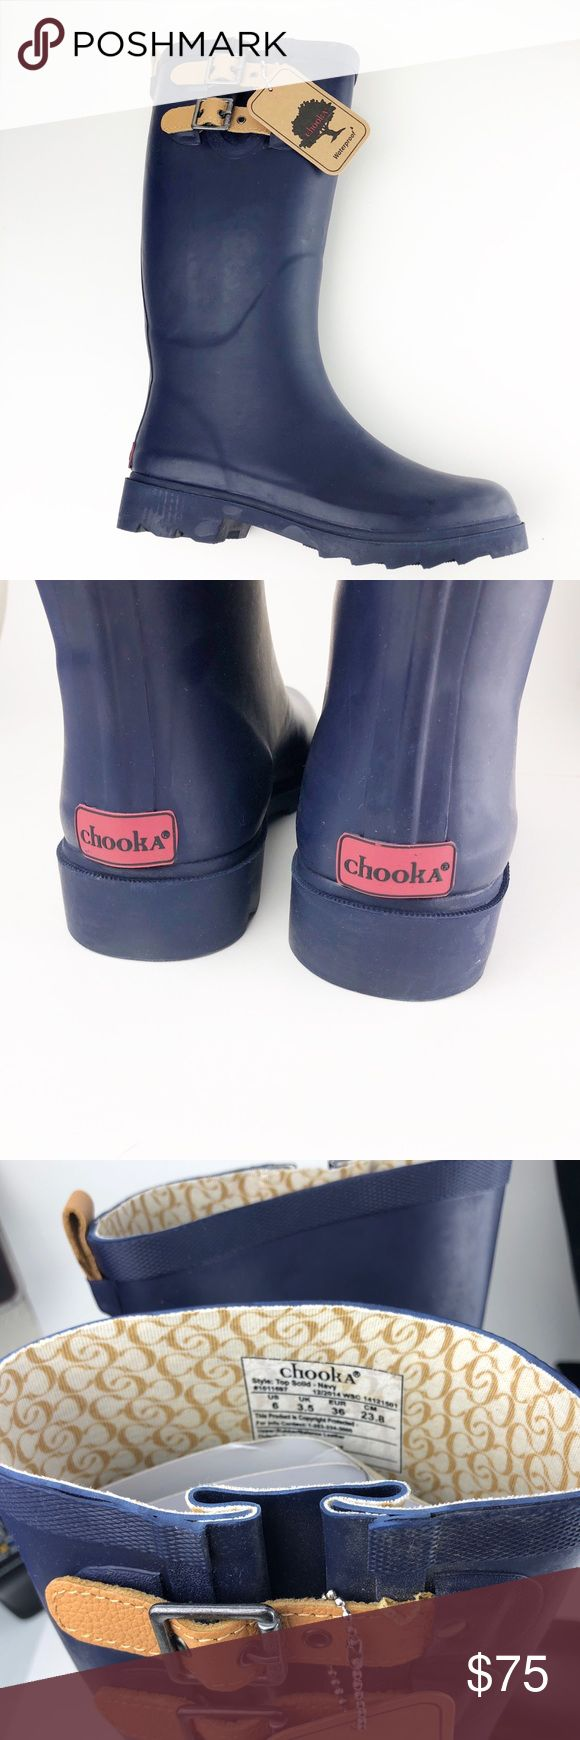 CHOOKA Women's Navy Rubber Rain Boots SZ 6 BNIB Brand new in box - women's CHOOKA rain boot. We also currently have the same size in espresso available in our closet. These are ready to ship and come from a non-smoke home! Chooka Shoes Winter & Rain Boots